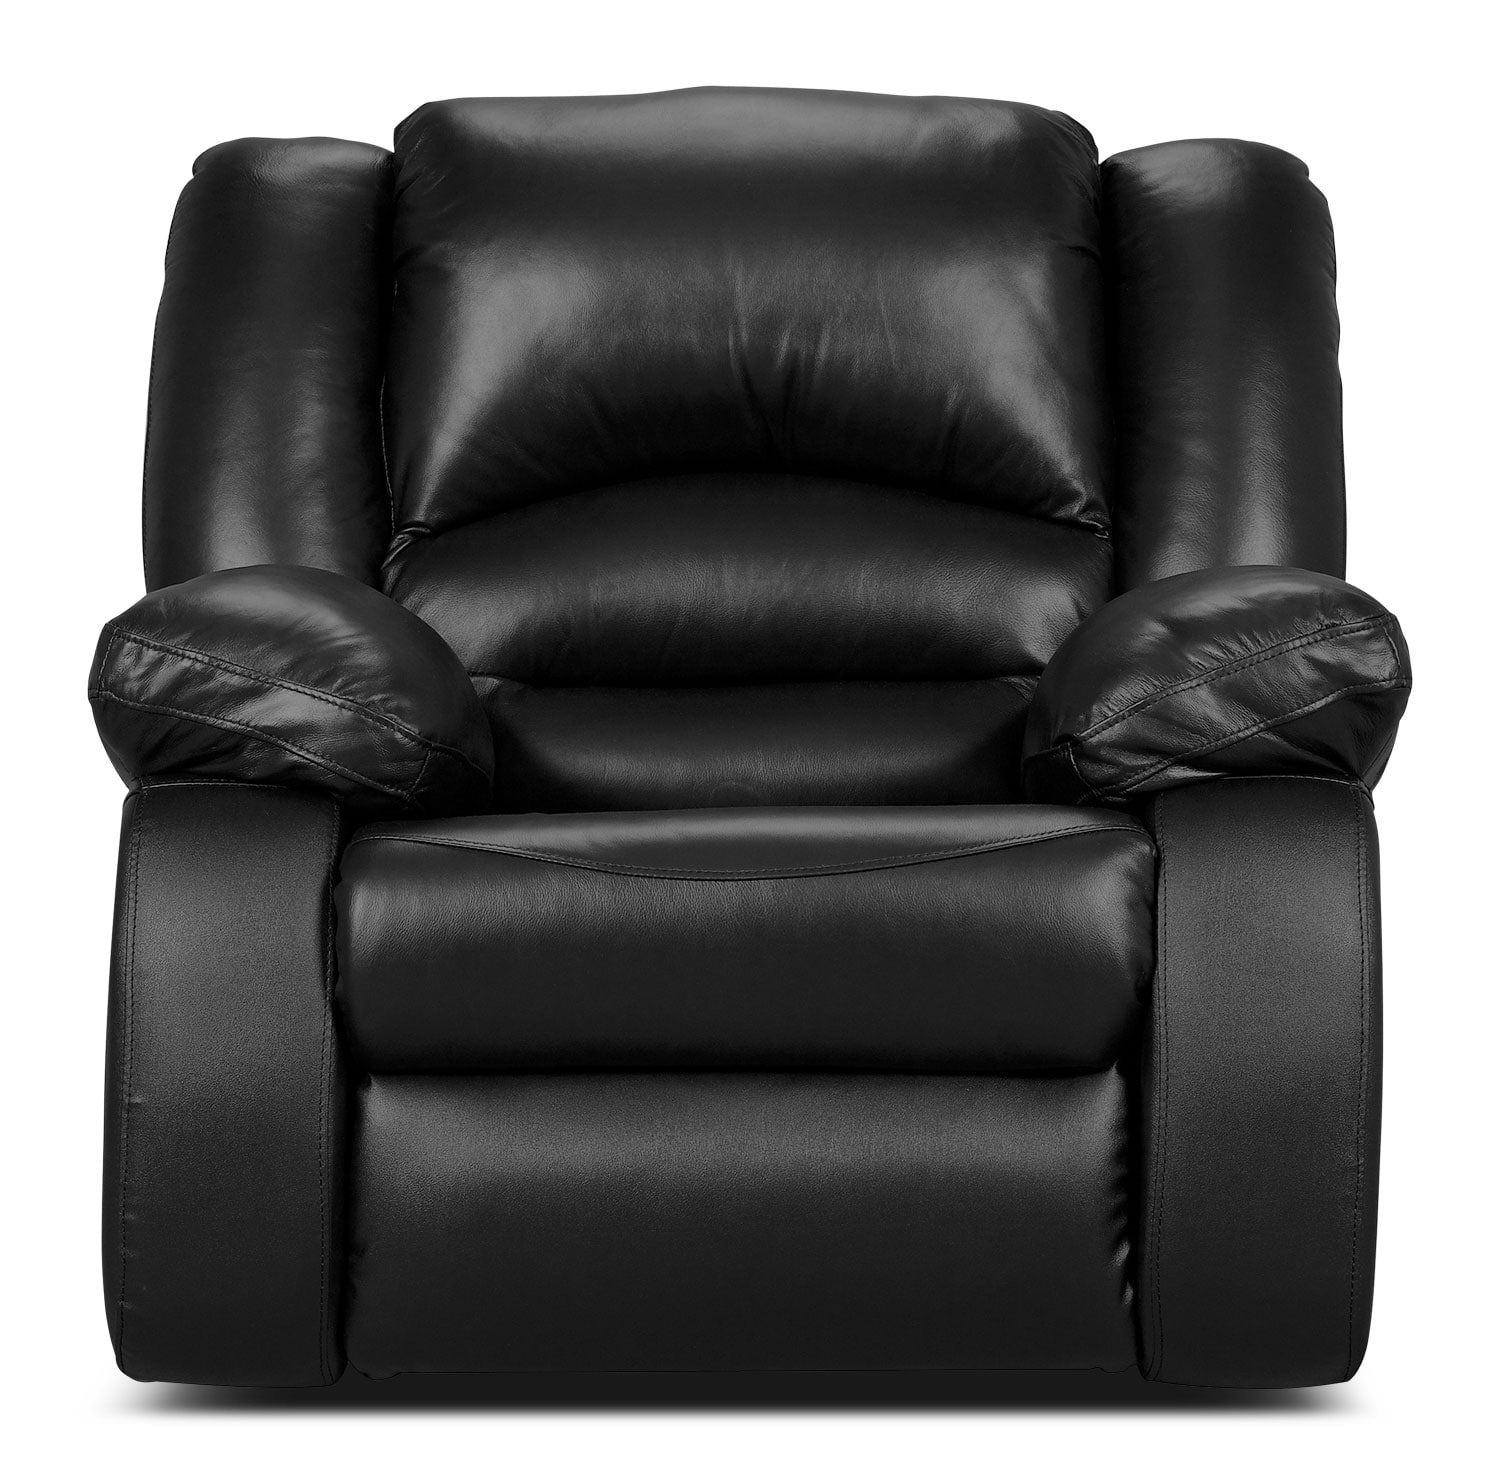 Real Leather Recliner Chairs Toreno Genuine Leather Power Reclining Chair Black The